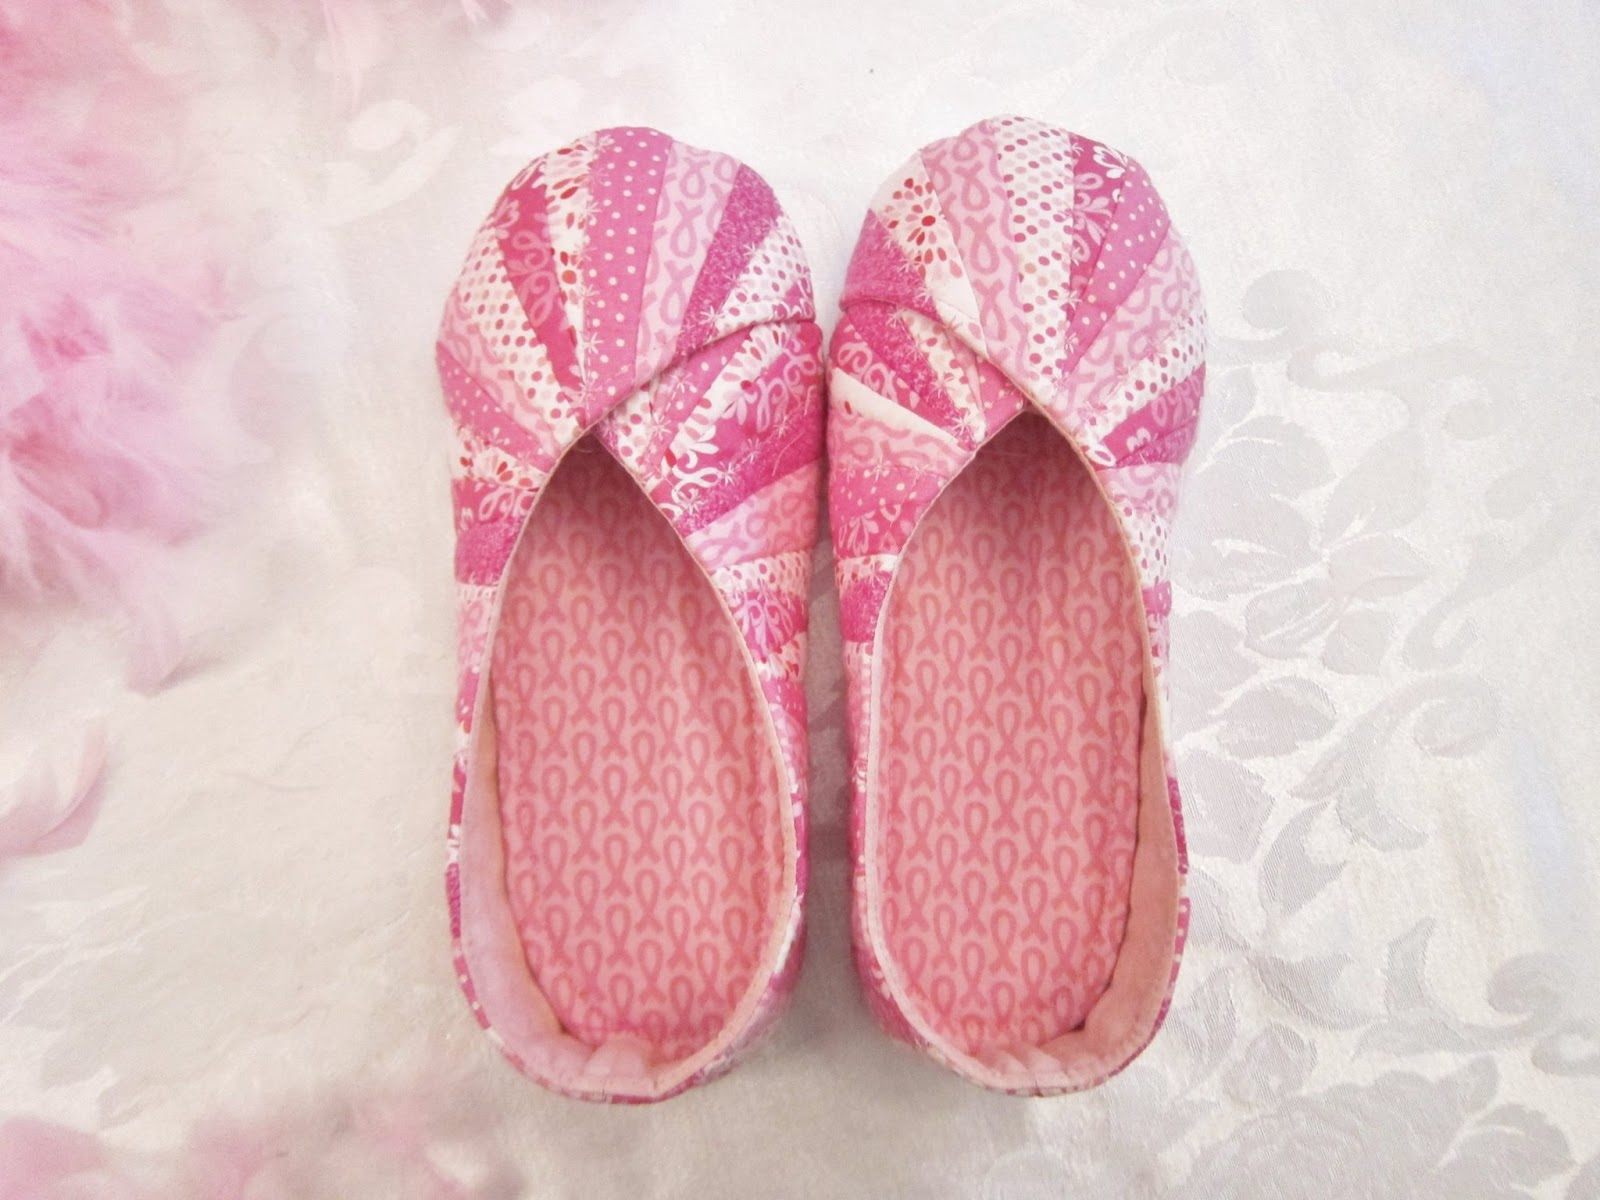 Cool Cats and Quilts: Quilted Snappy Slippers for Breast Cancer ... : quilted slippers pattern - Adamdwight.com